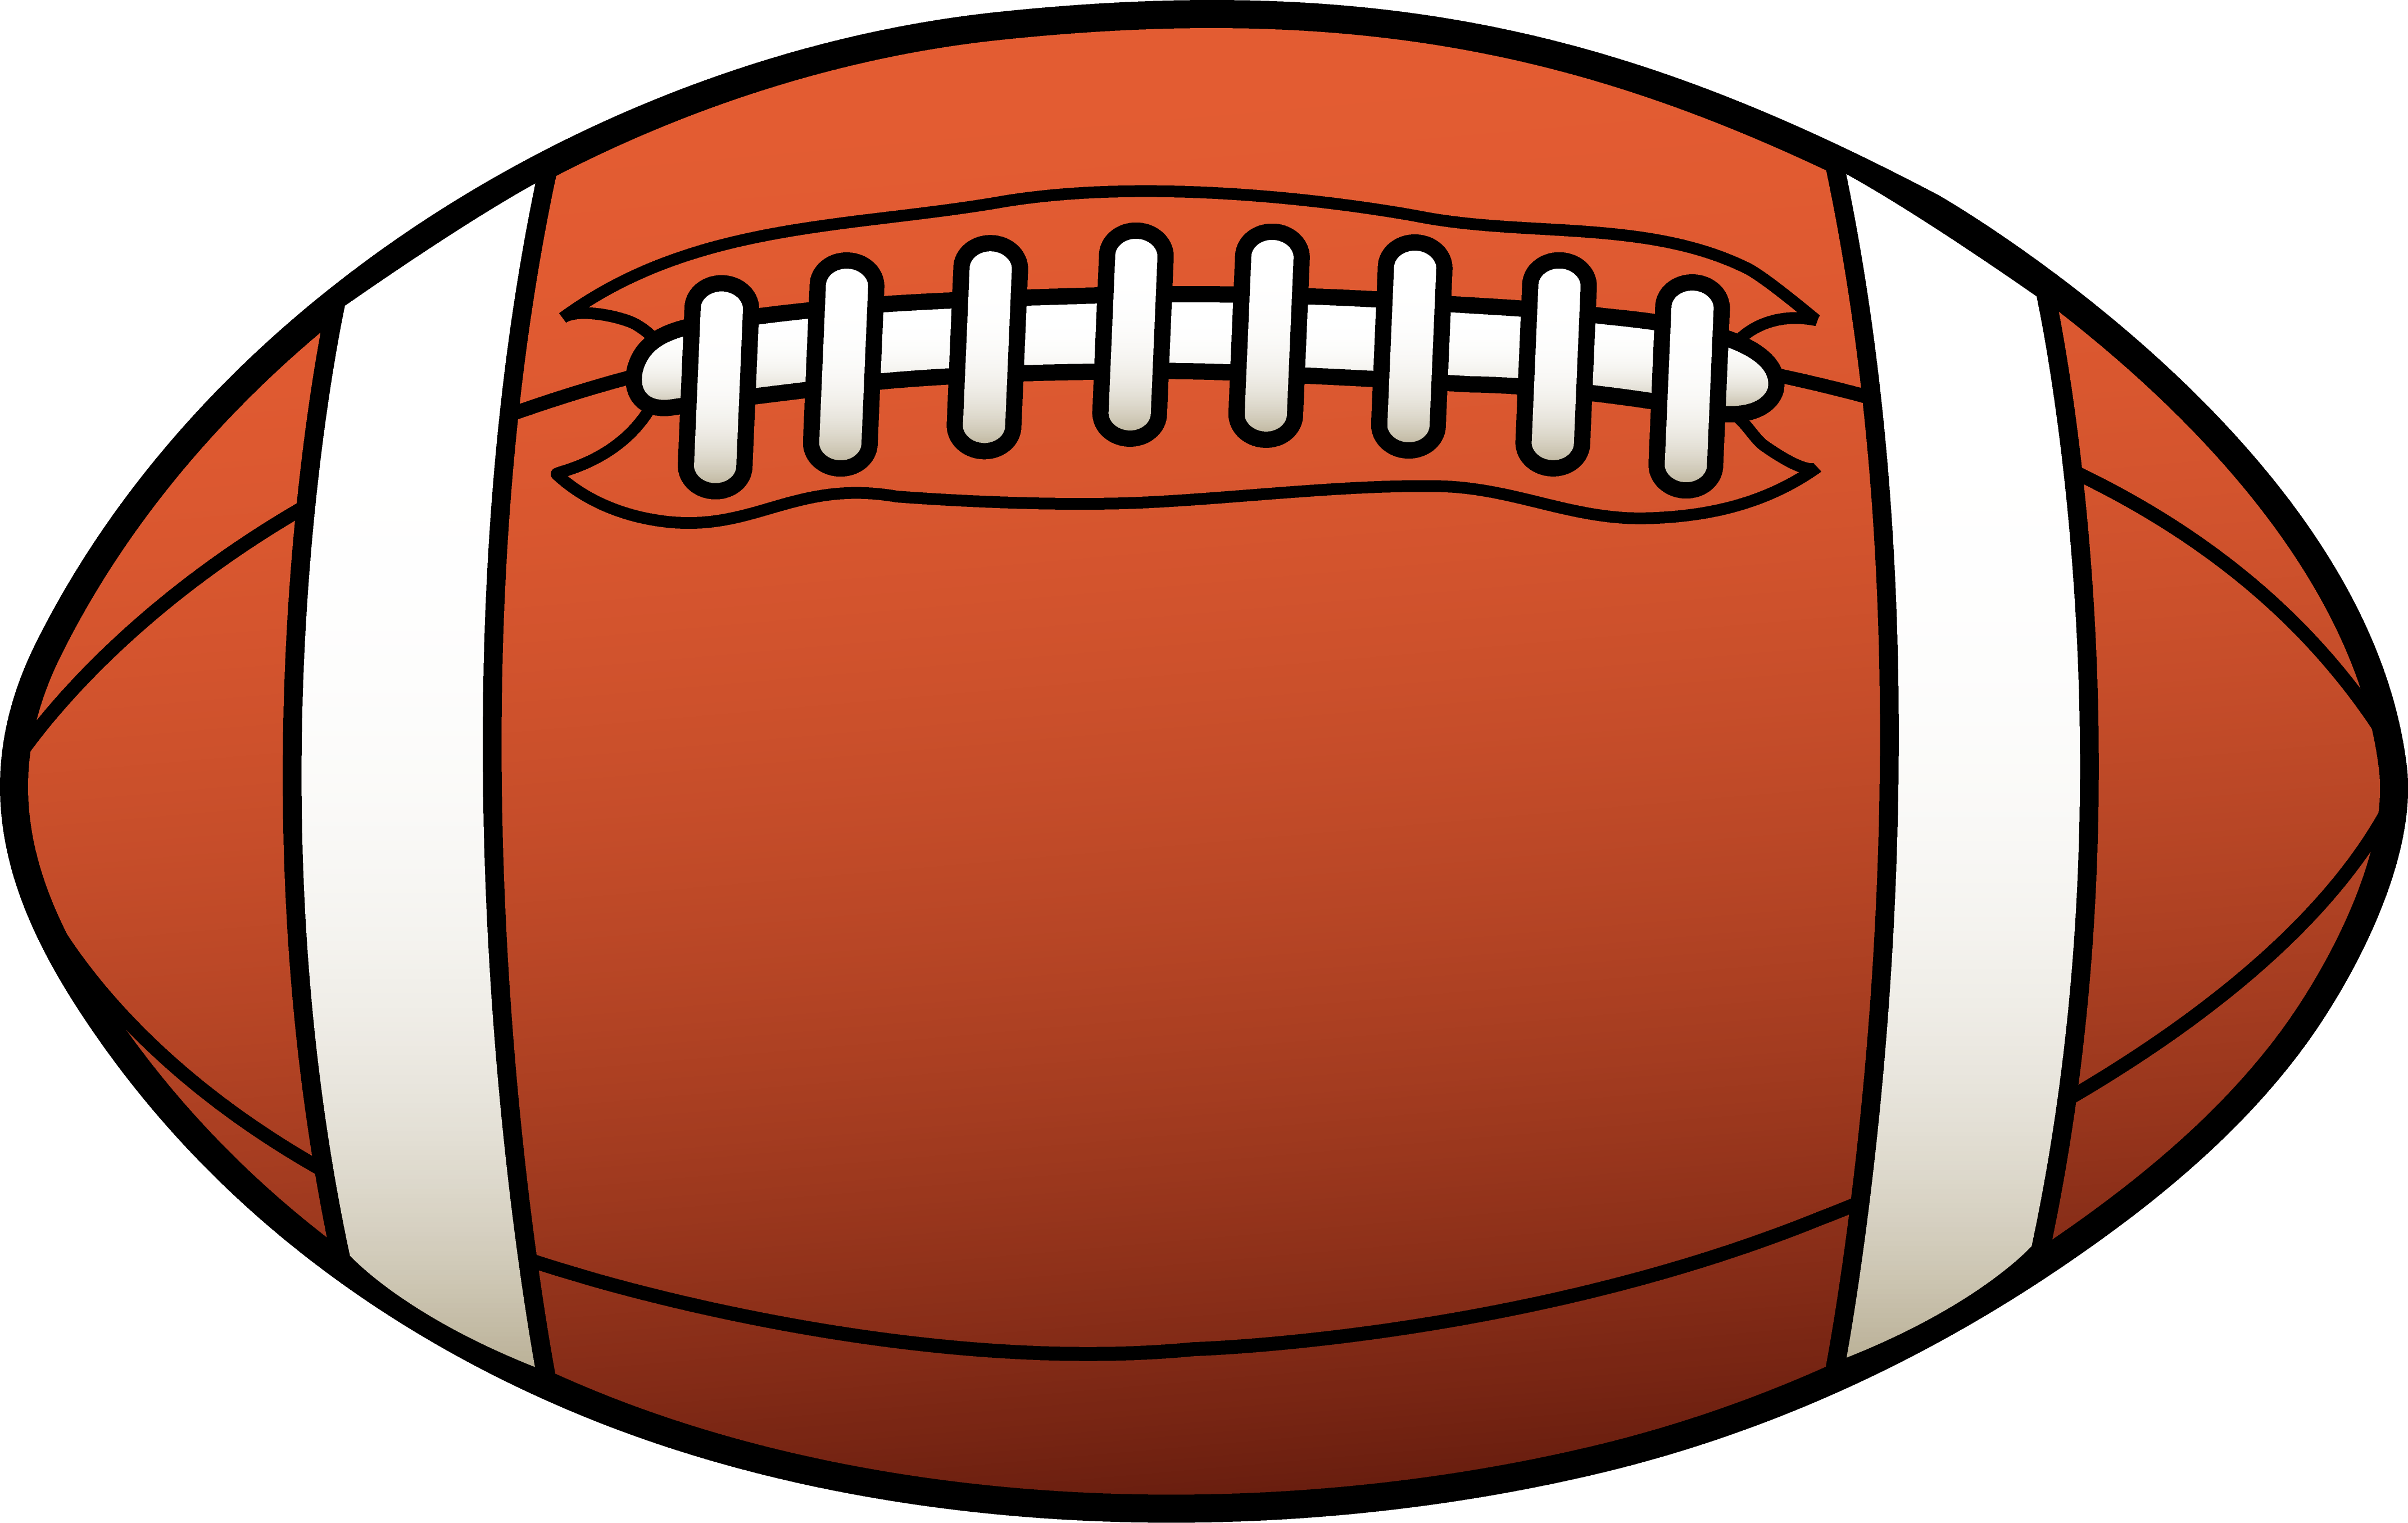 Nfl Football Players Wallpapers Clipart Panda Free Clipart: Clipart Panda - Free Clipart Images